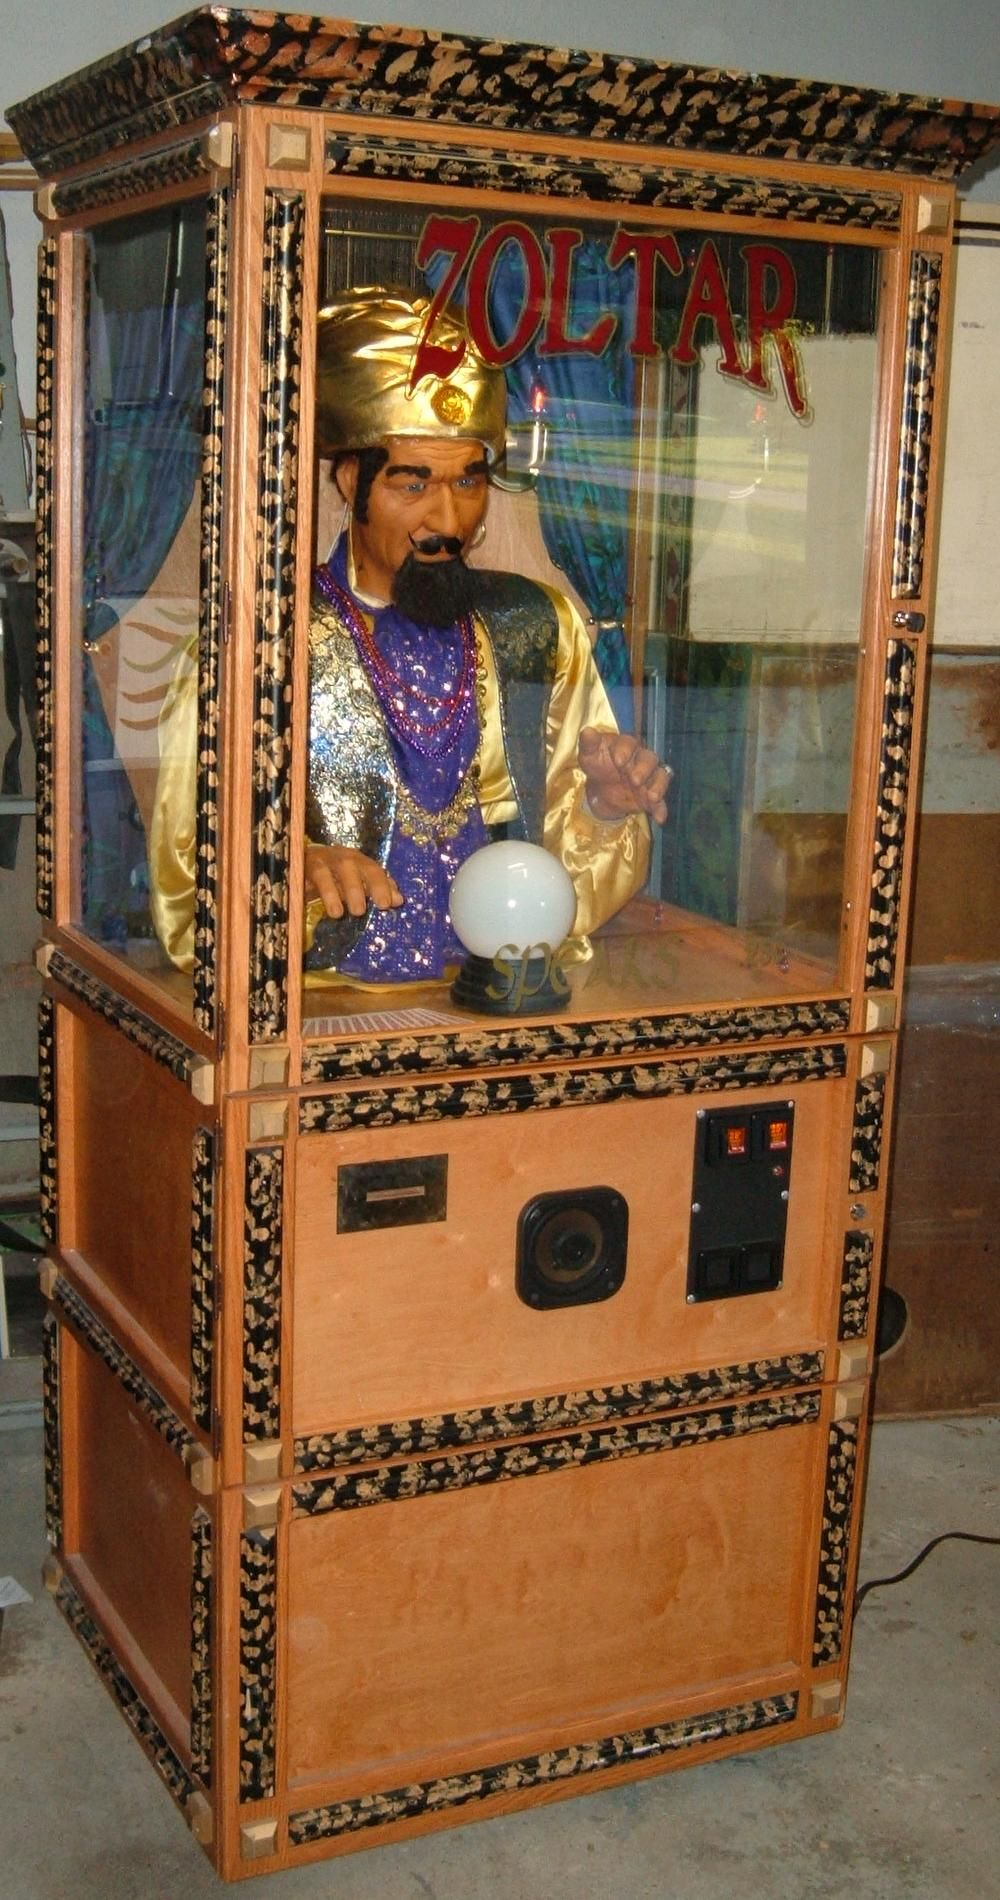 Zoltar, mechanical Fortune Tellerthe name is the same